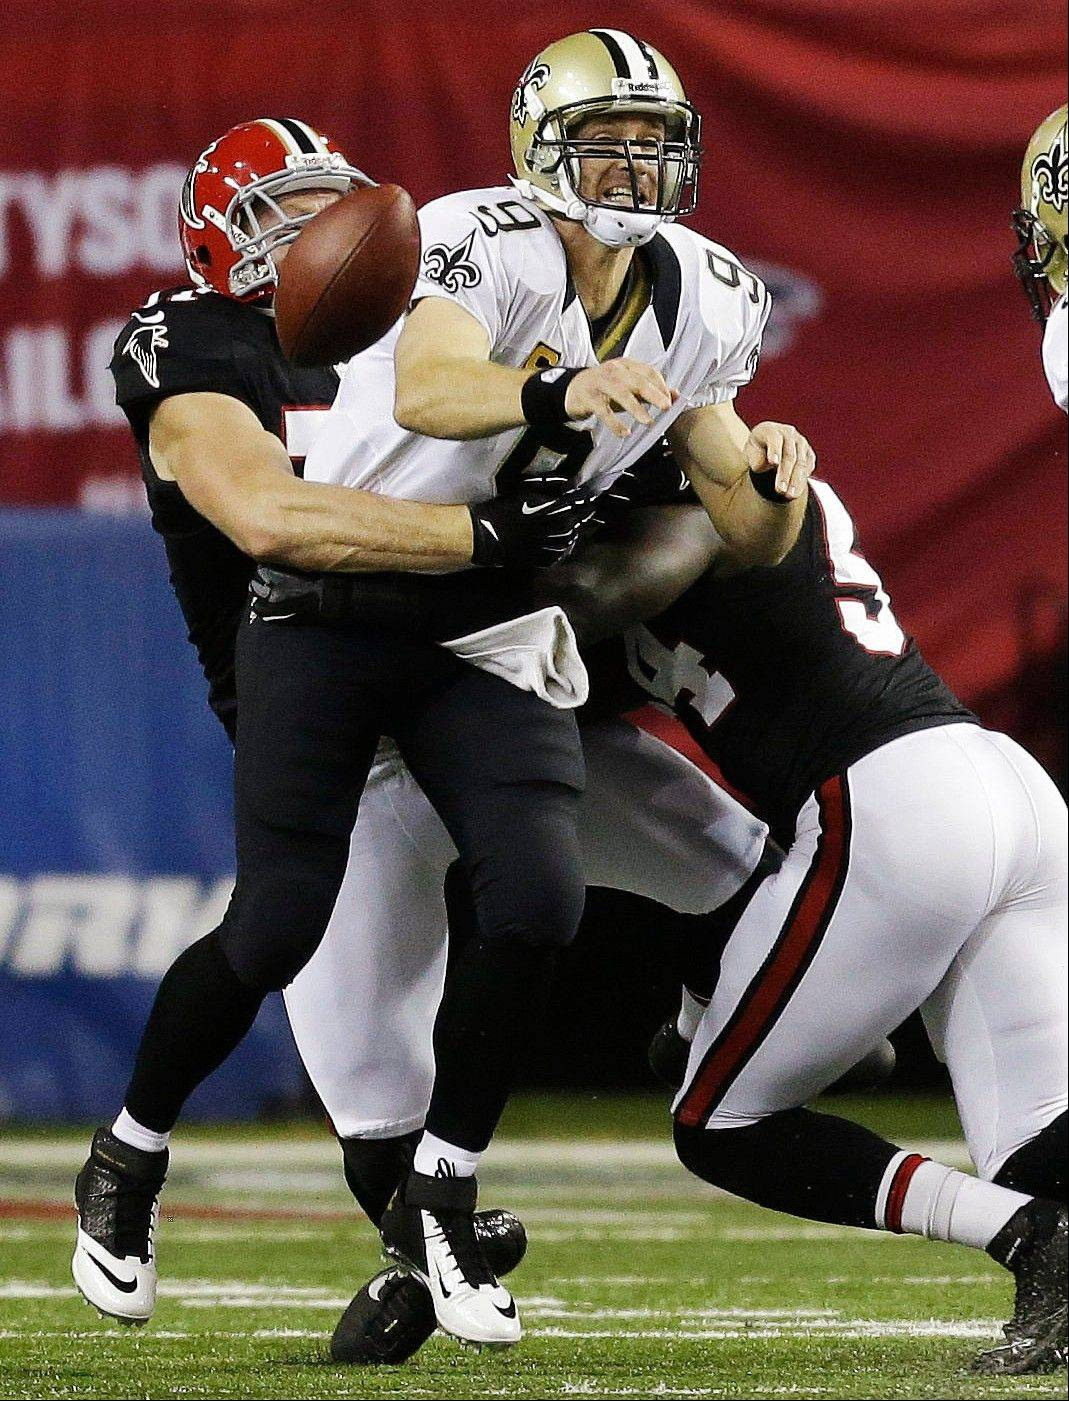 The Atlanta Falcons moved to the brink of clinching a division championship. Drew Brees and the New Orleans Saints wound up with egg on their faces. After racing to a 17-0 lead, the Falcons turned to their defense to make it stand up, picking off five of Brees' passes and ending his NFL-record touchdown streak in a 23-13 victory over the Saints on Thursday night.